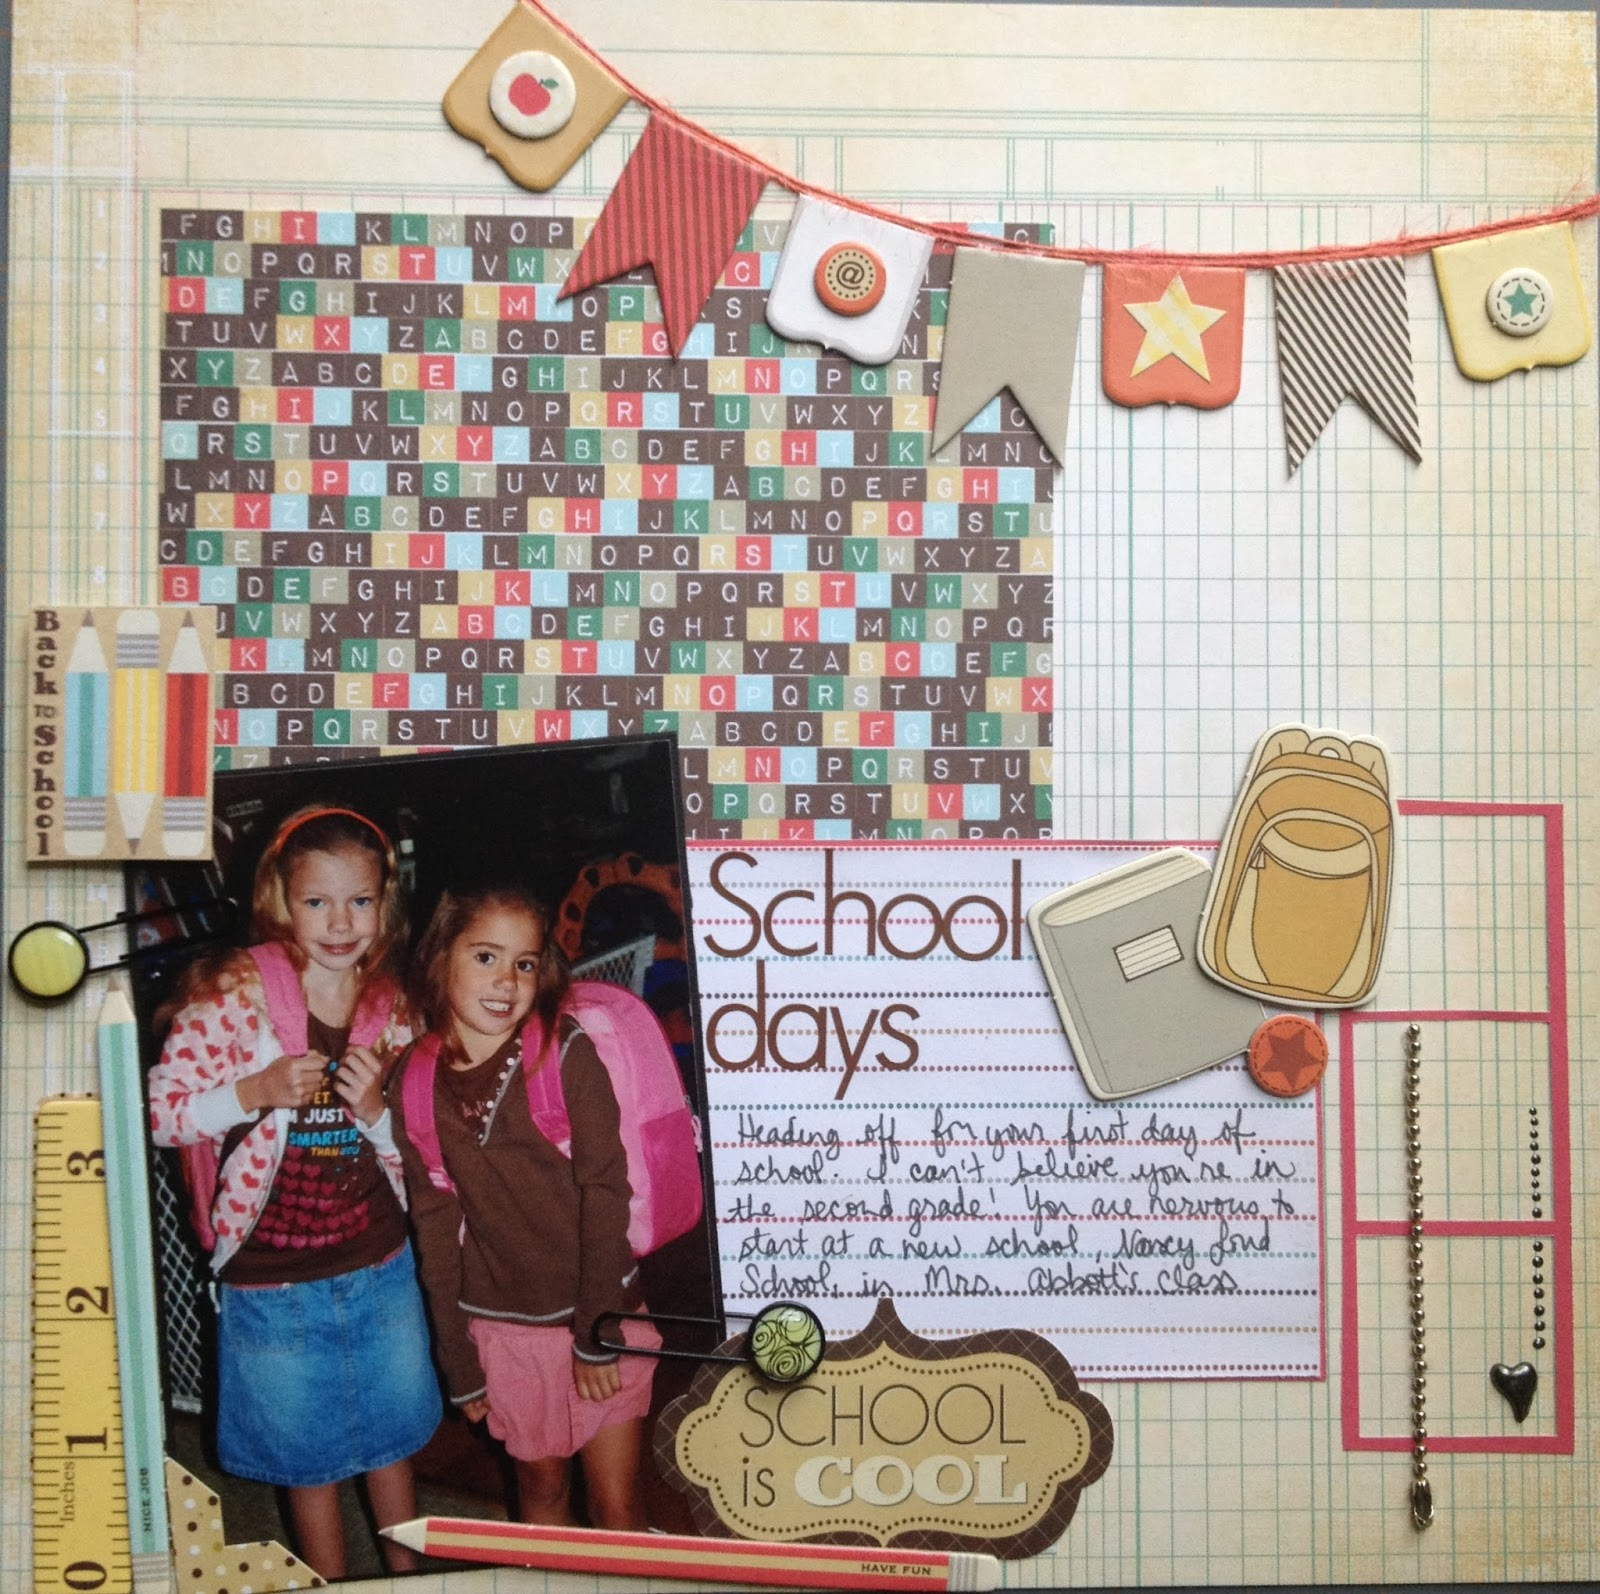 One direction scrapbook ideas -  Old Pic Of The Girls On Their First Day Of School 2nd Grade And Kindergarten I Turned To The Fancypants Off To School Collection For This One